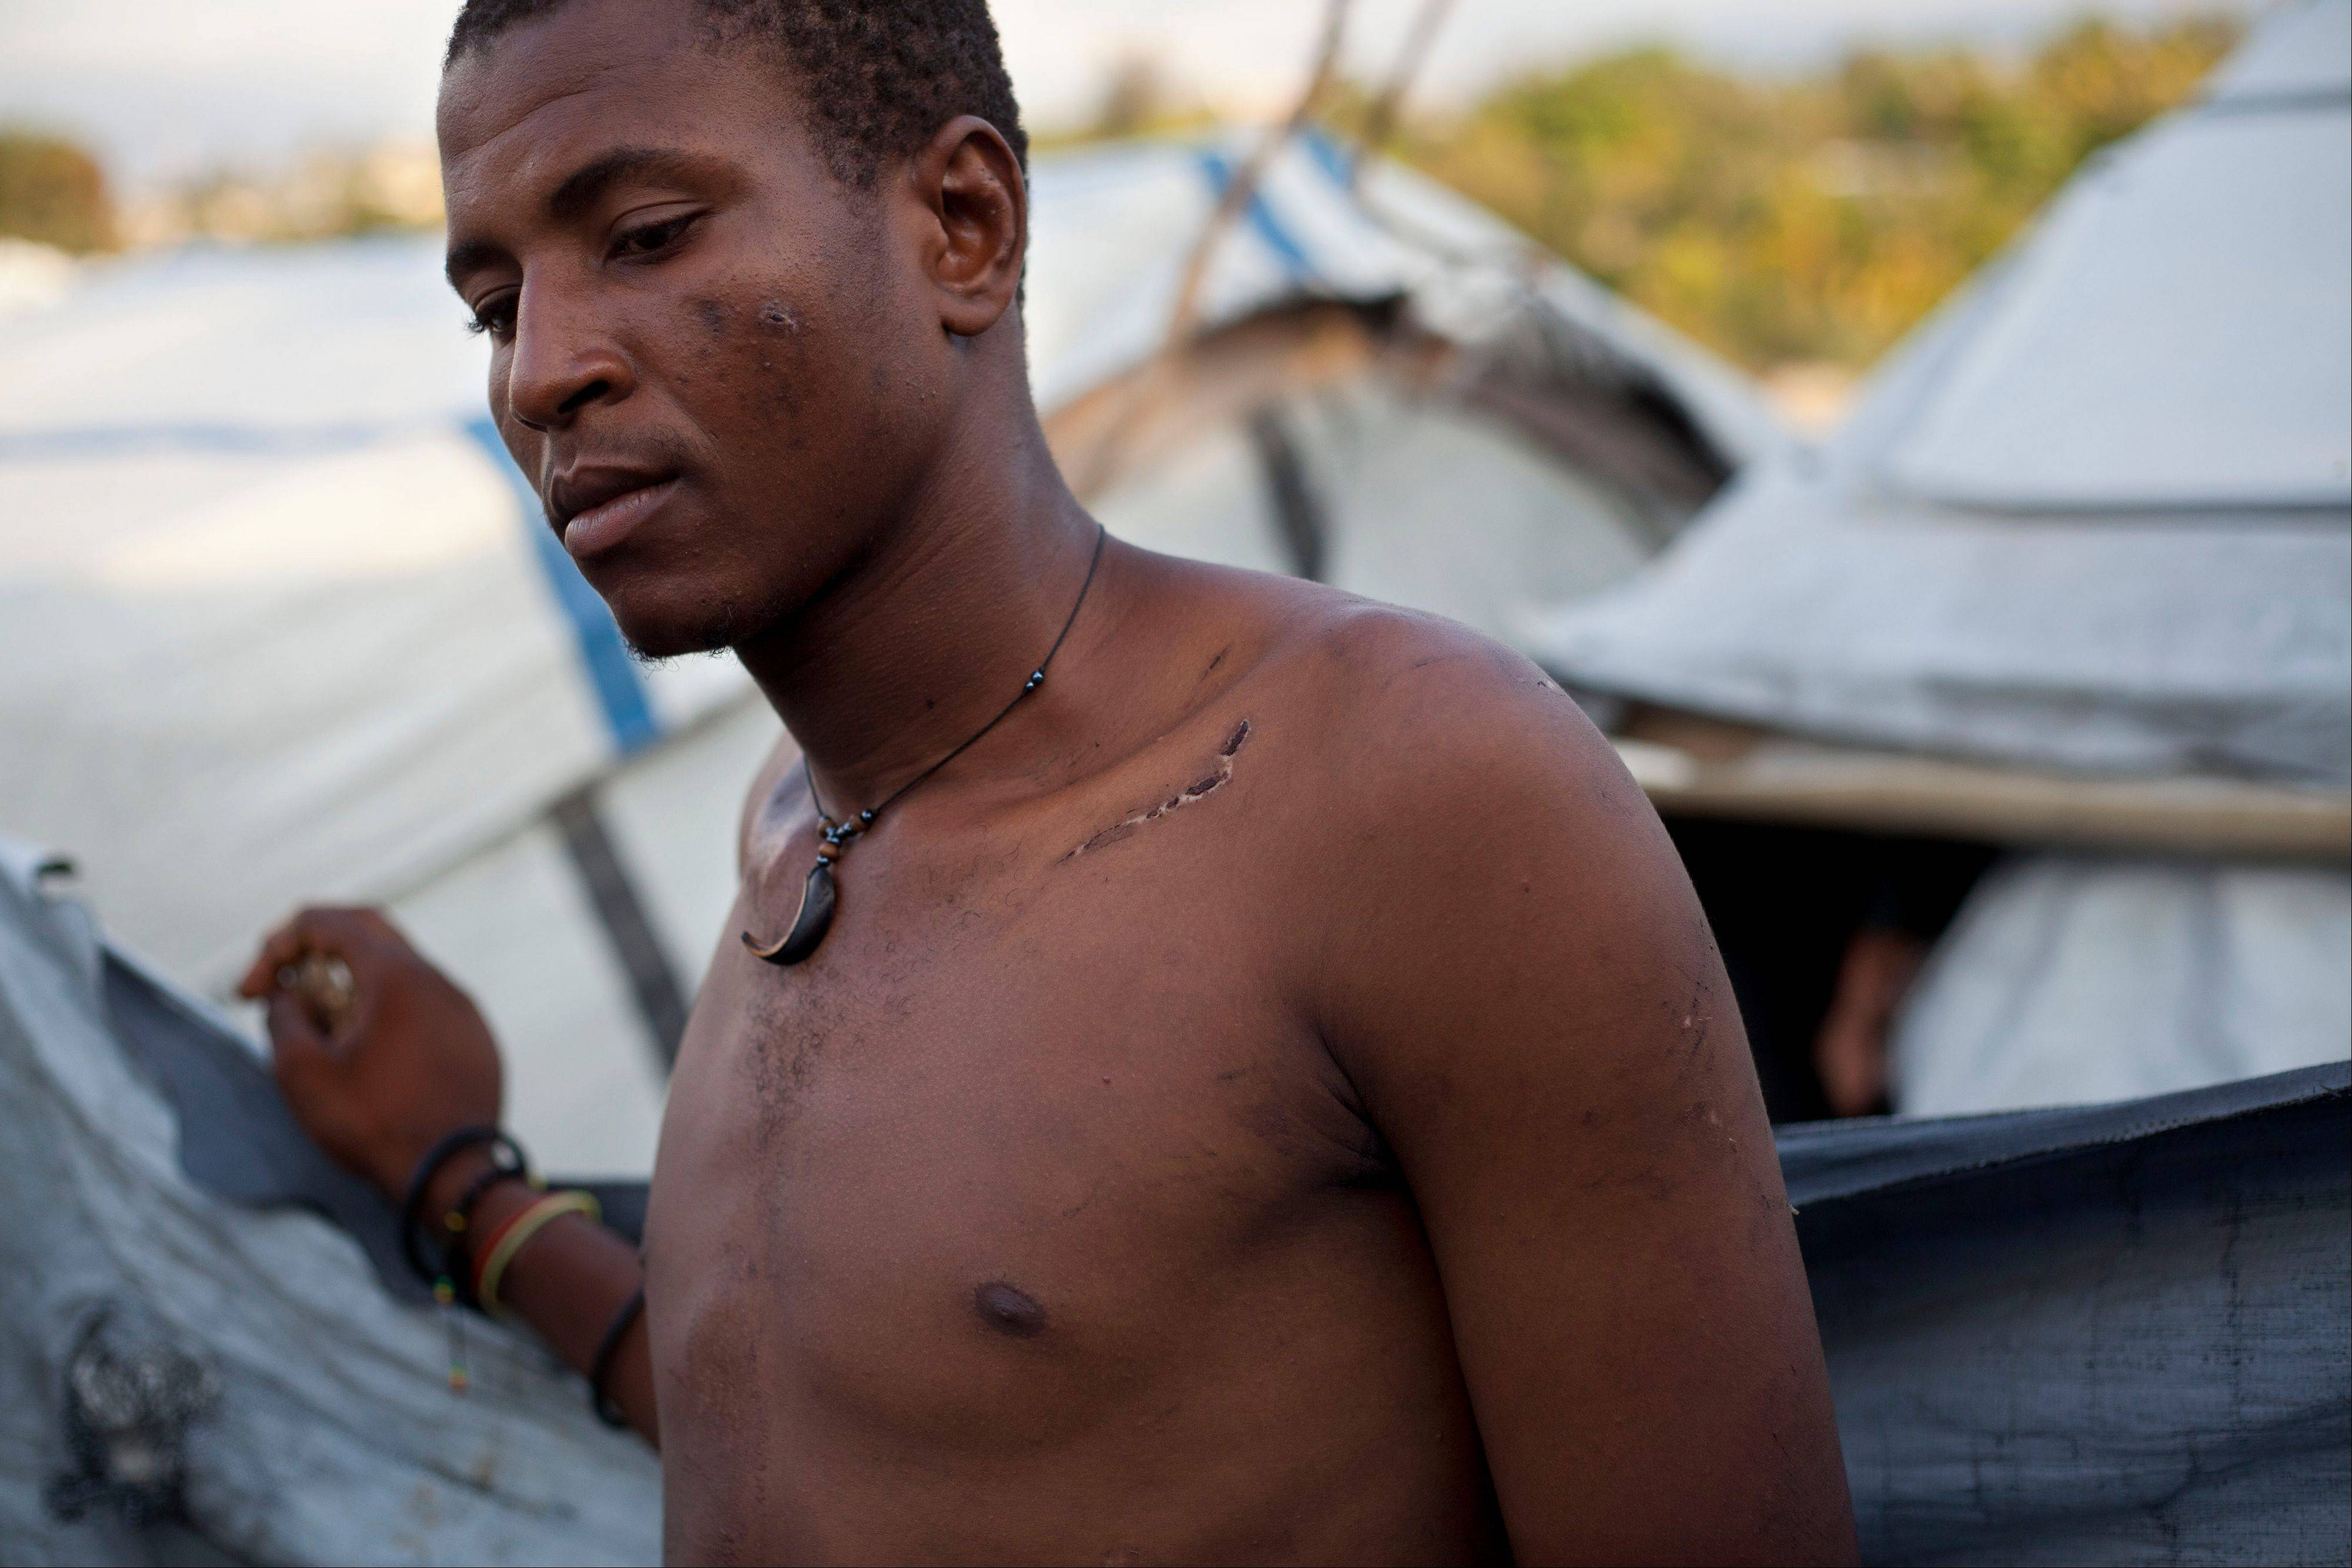 Darlin Lexima shows a scar covering his collar bone which he says was inflicted by a police beating as he stands outside his home at Camp Acra in the Delmas district of Port-au-Prince, Haiti. Lexima, 21, was arrested by police early April 15 when he was walking home from a disco club, as residents at his camp were protesting a raid by motorcyclists who set fire to their homes.